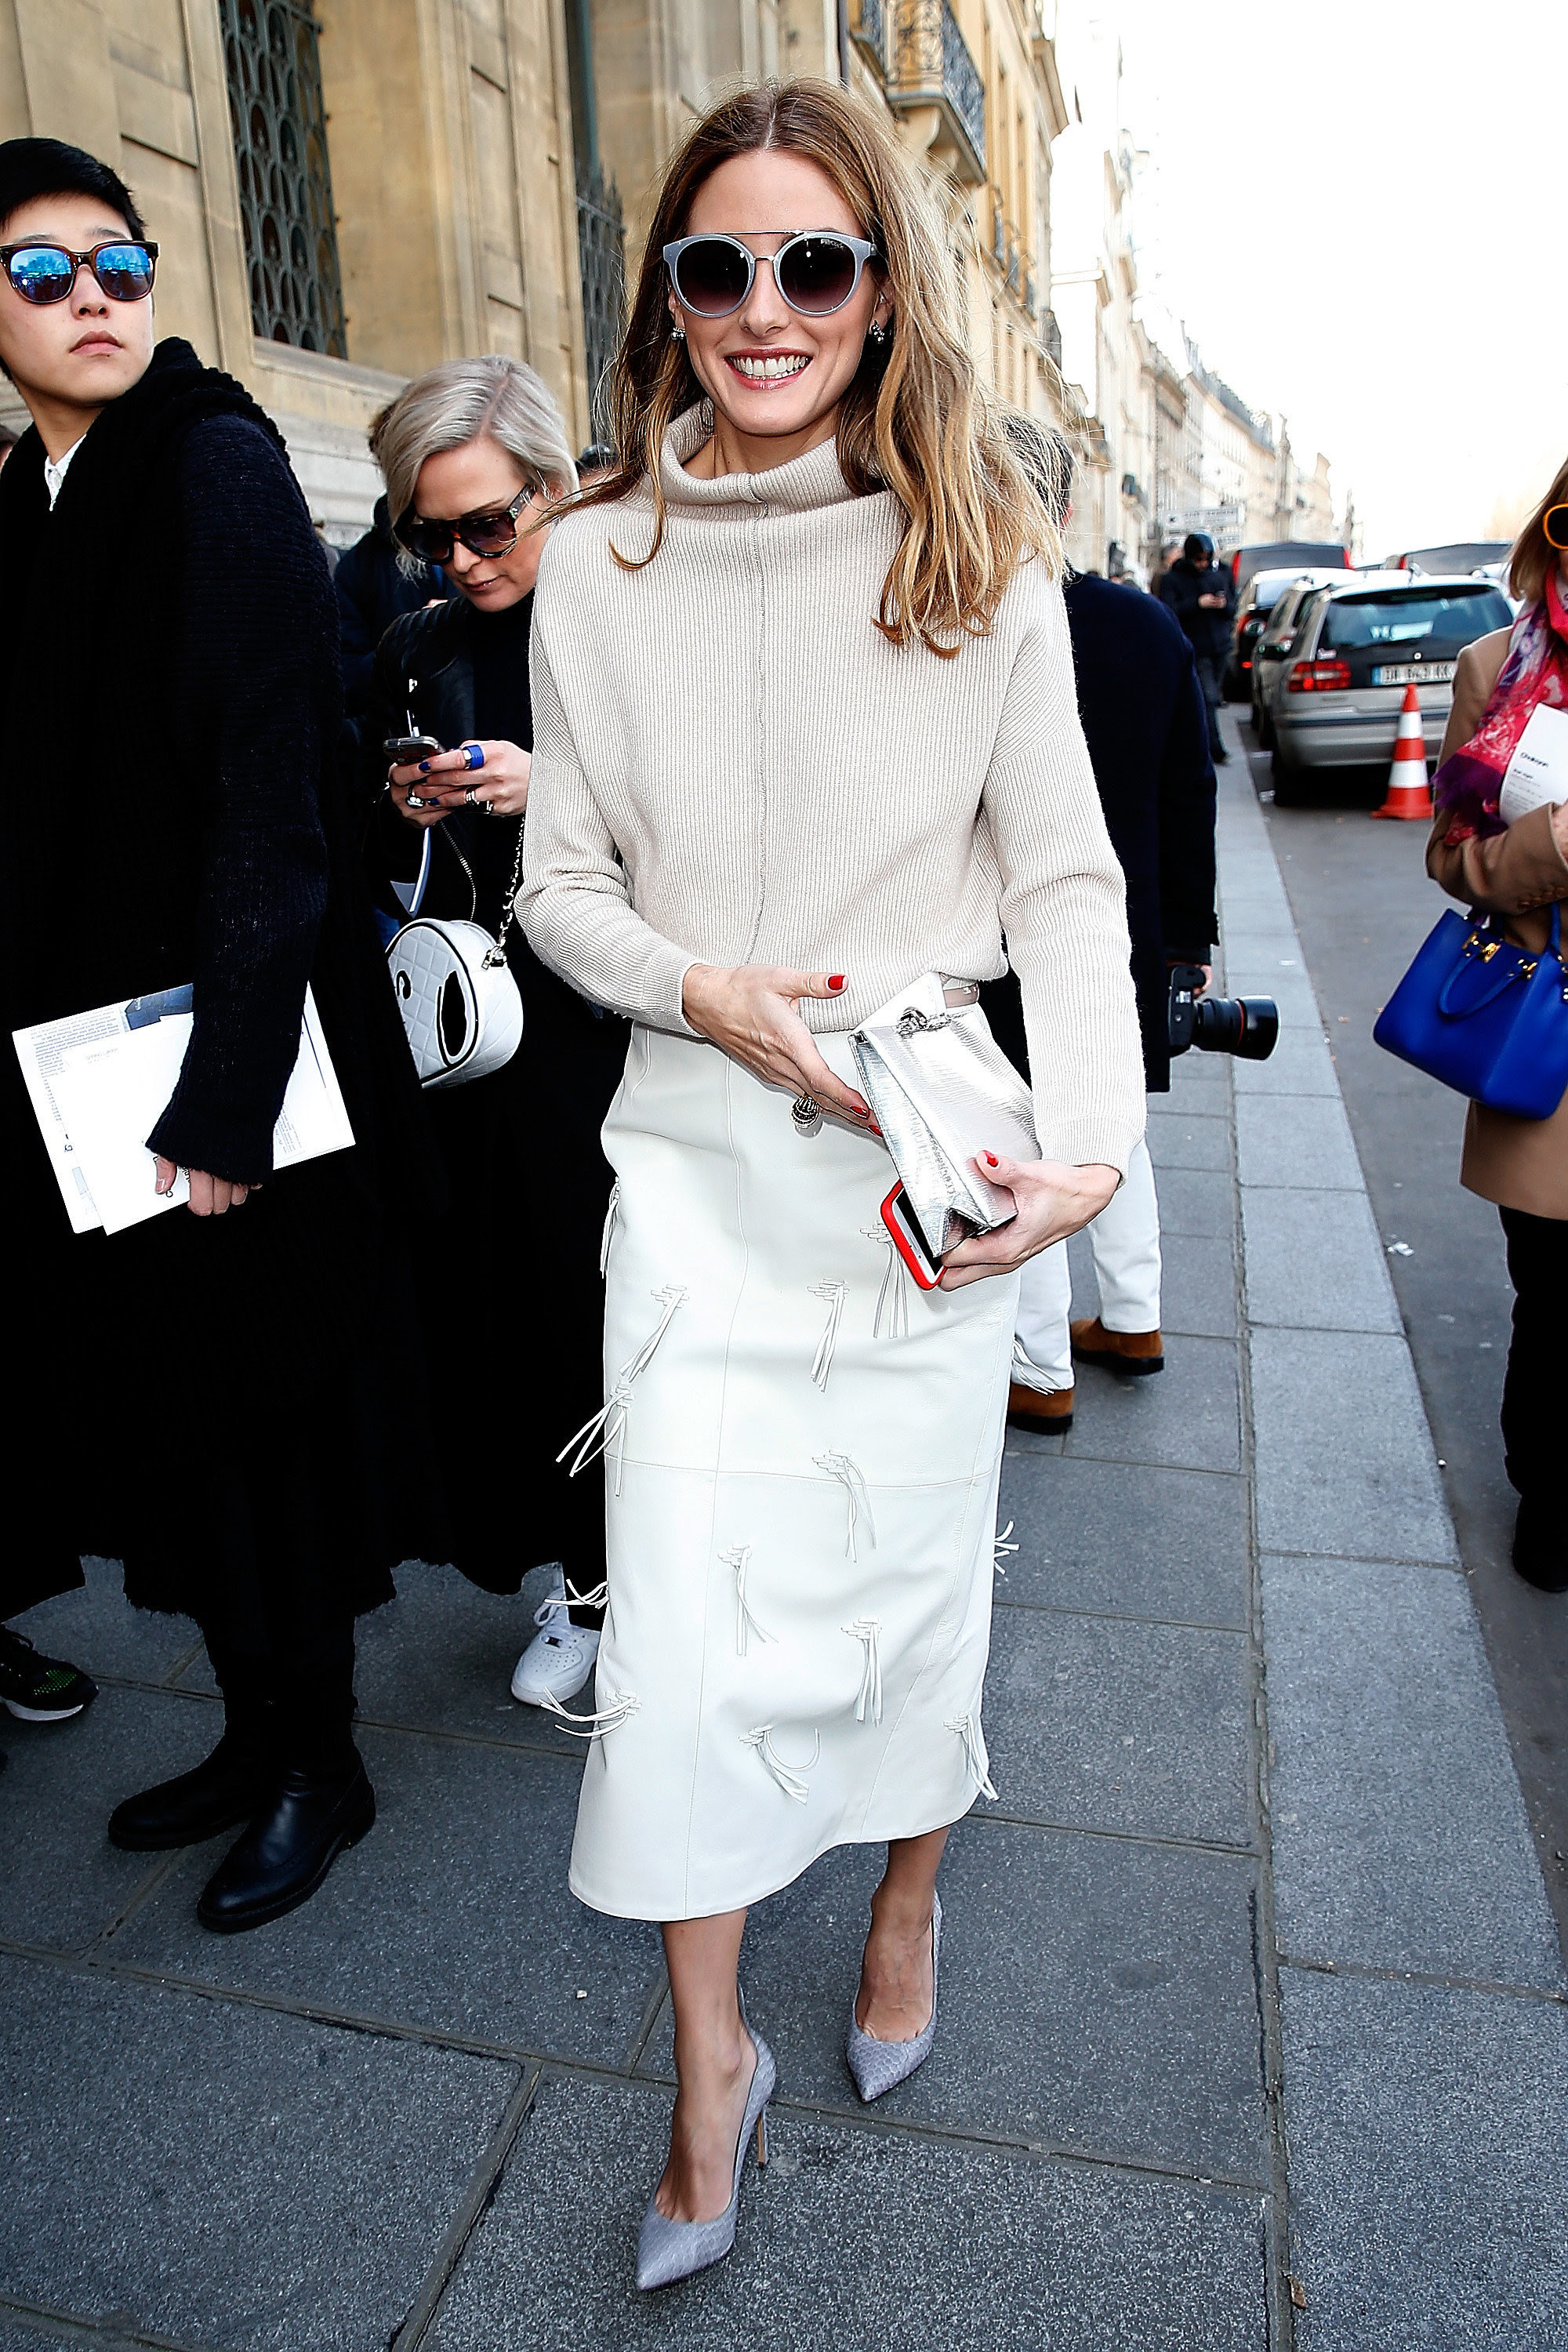 A Tasseled Midi Skirt Is the Trendiest Staple You Could Ever Invest In